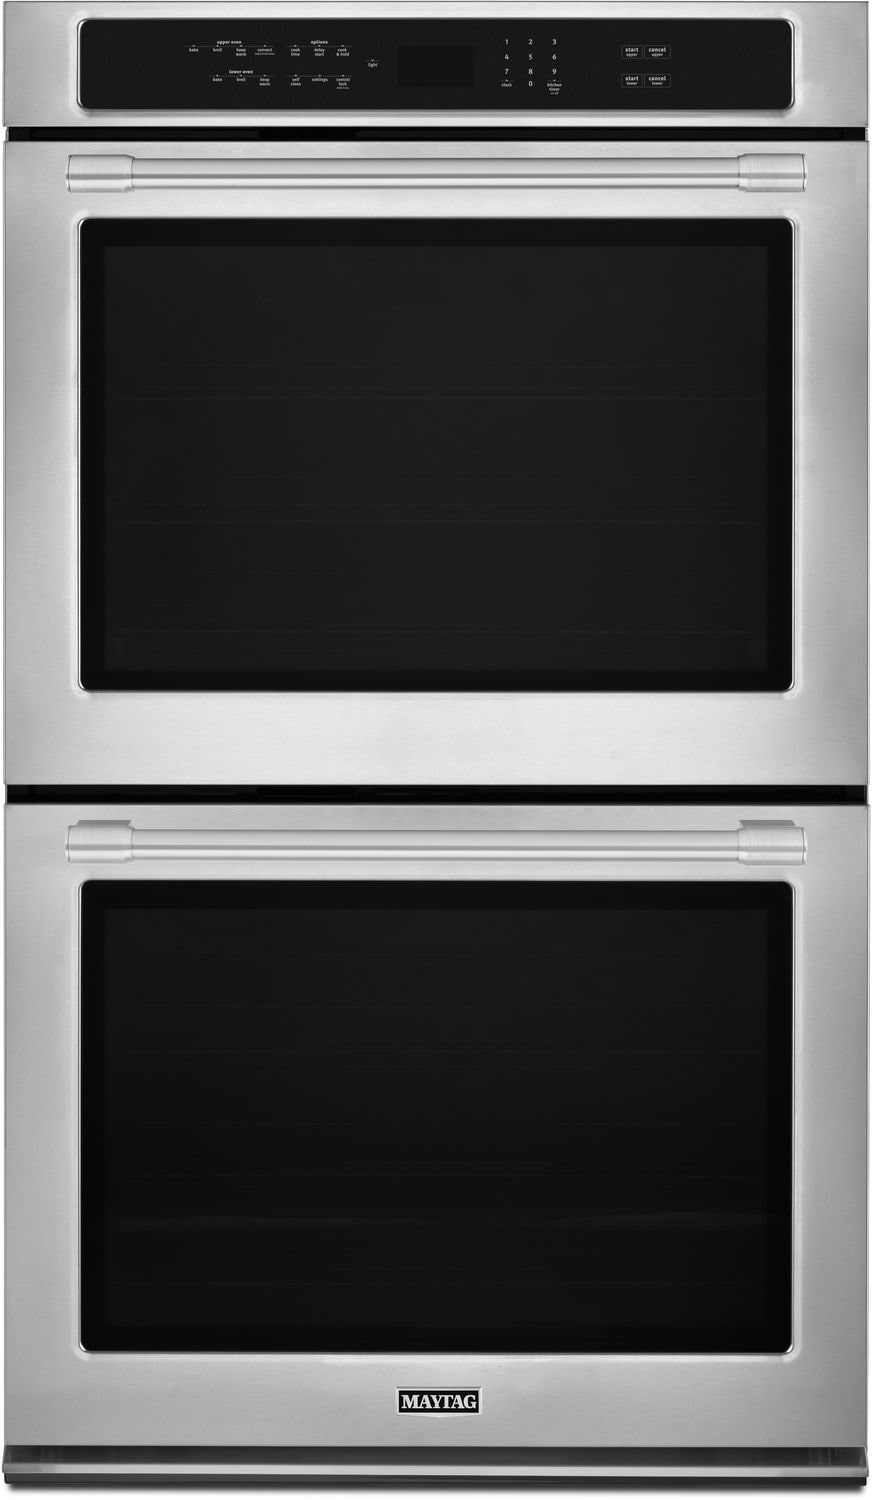 Cooking Products - Maytag 10.0 Cu. Ft. Double Wall Oven – MEW9630FZ